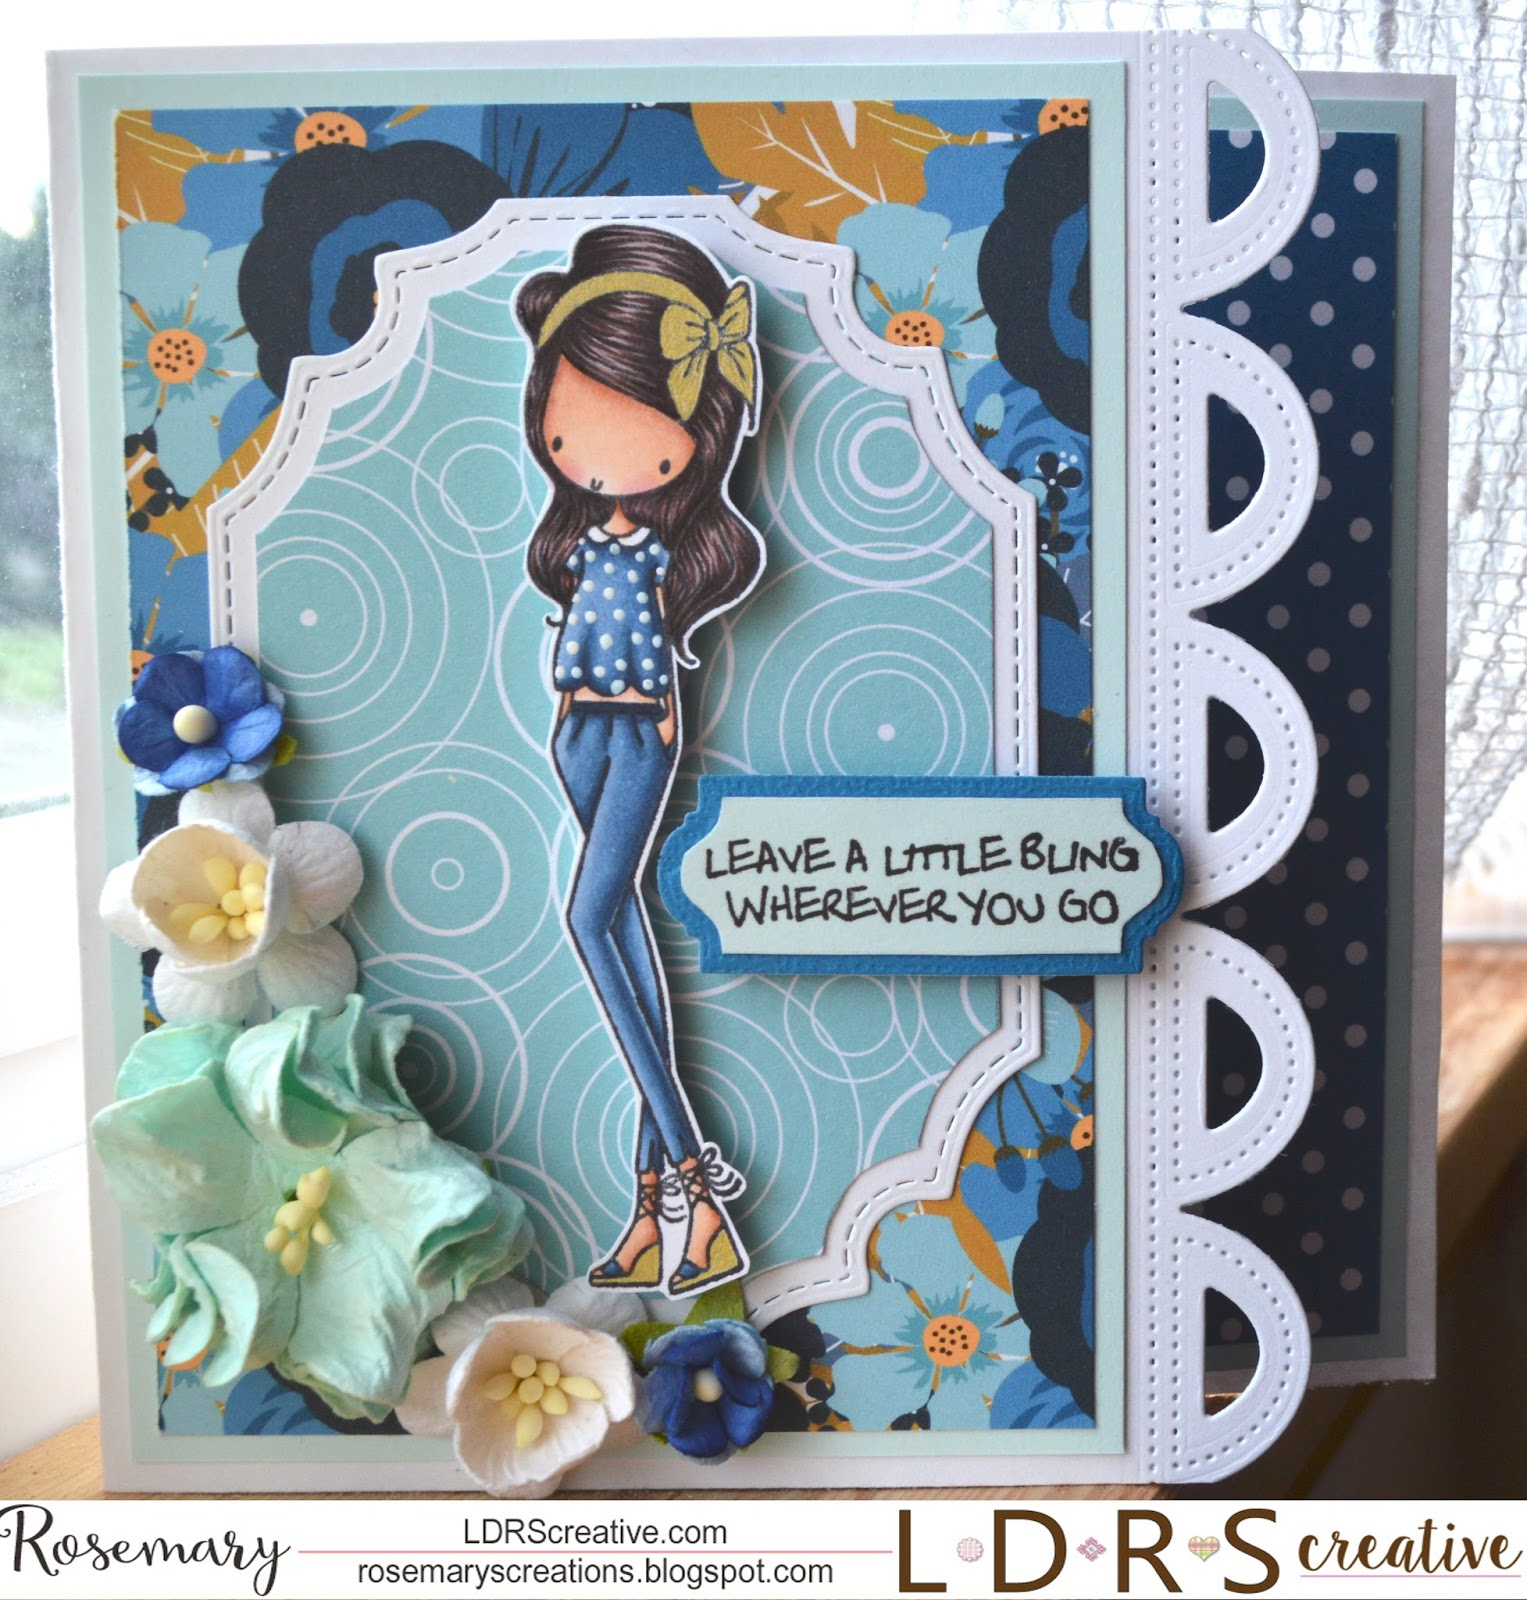 Rosemary\'s Creations: LDRS Creative: ADU Girl\'s Night Out!